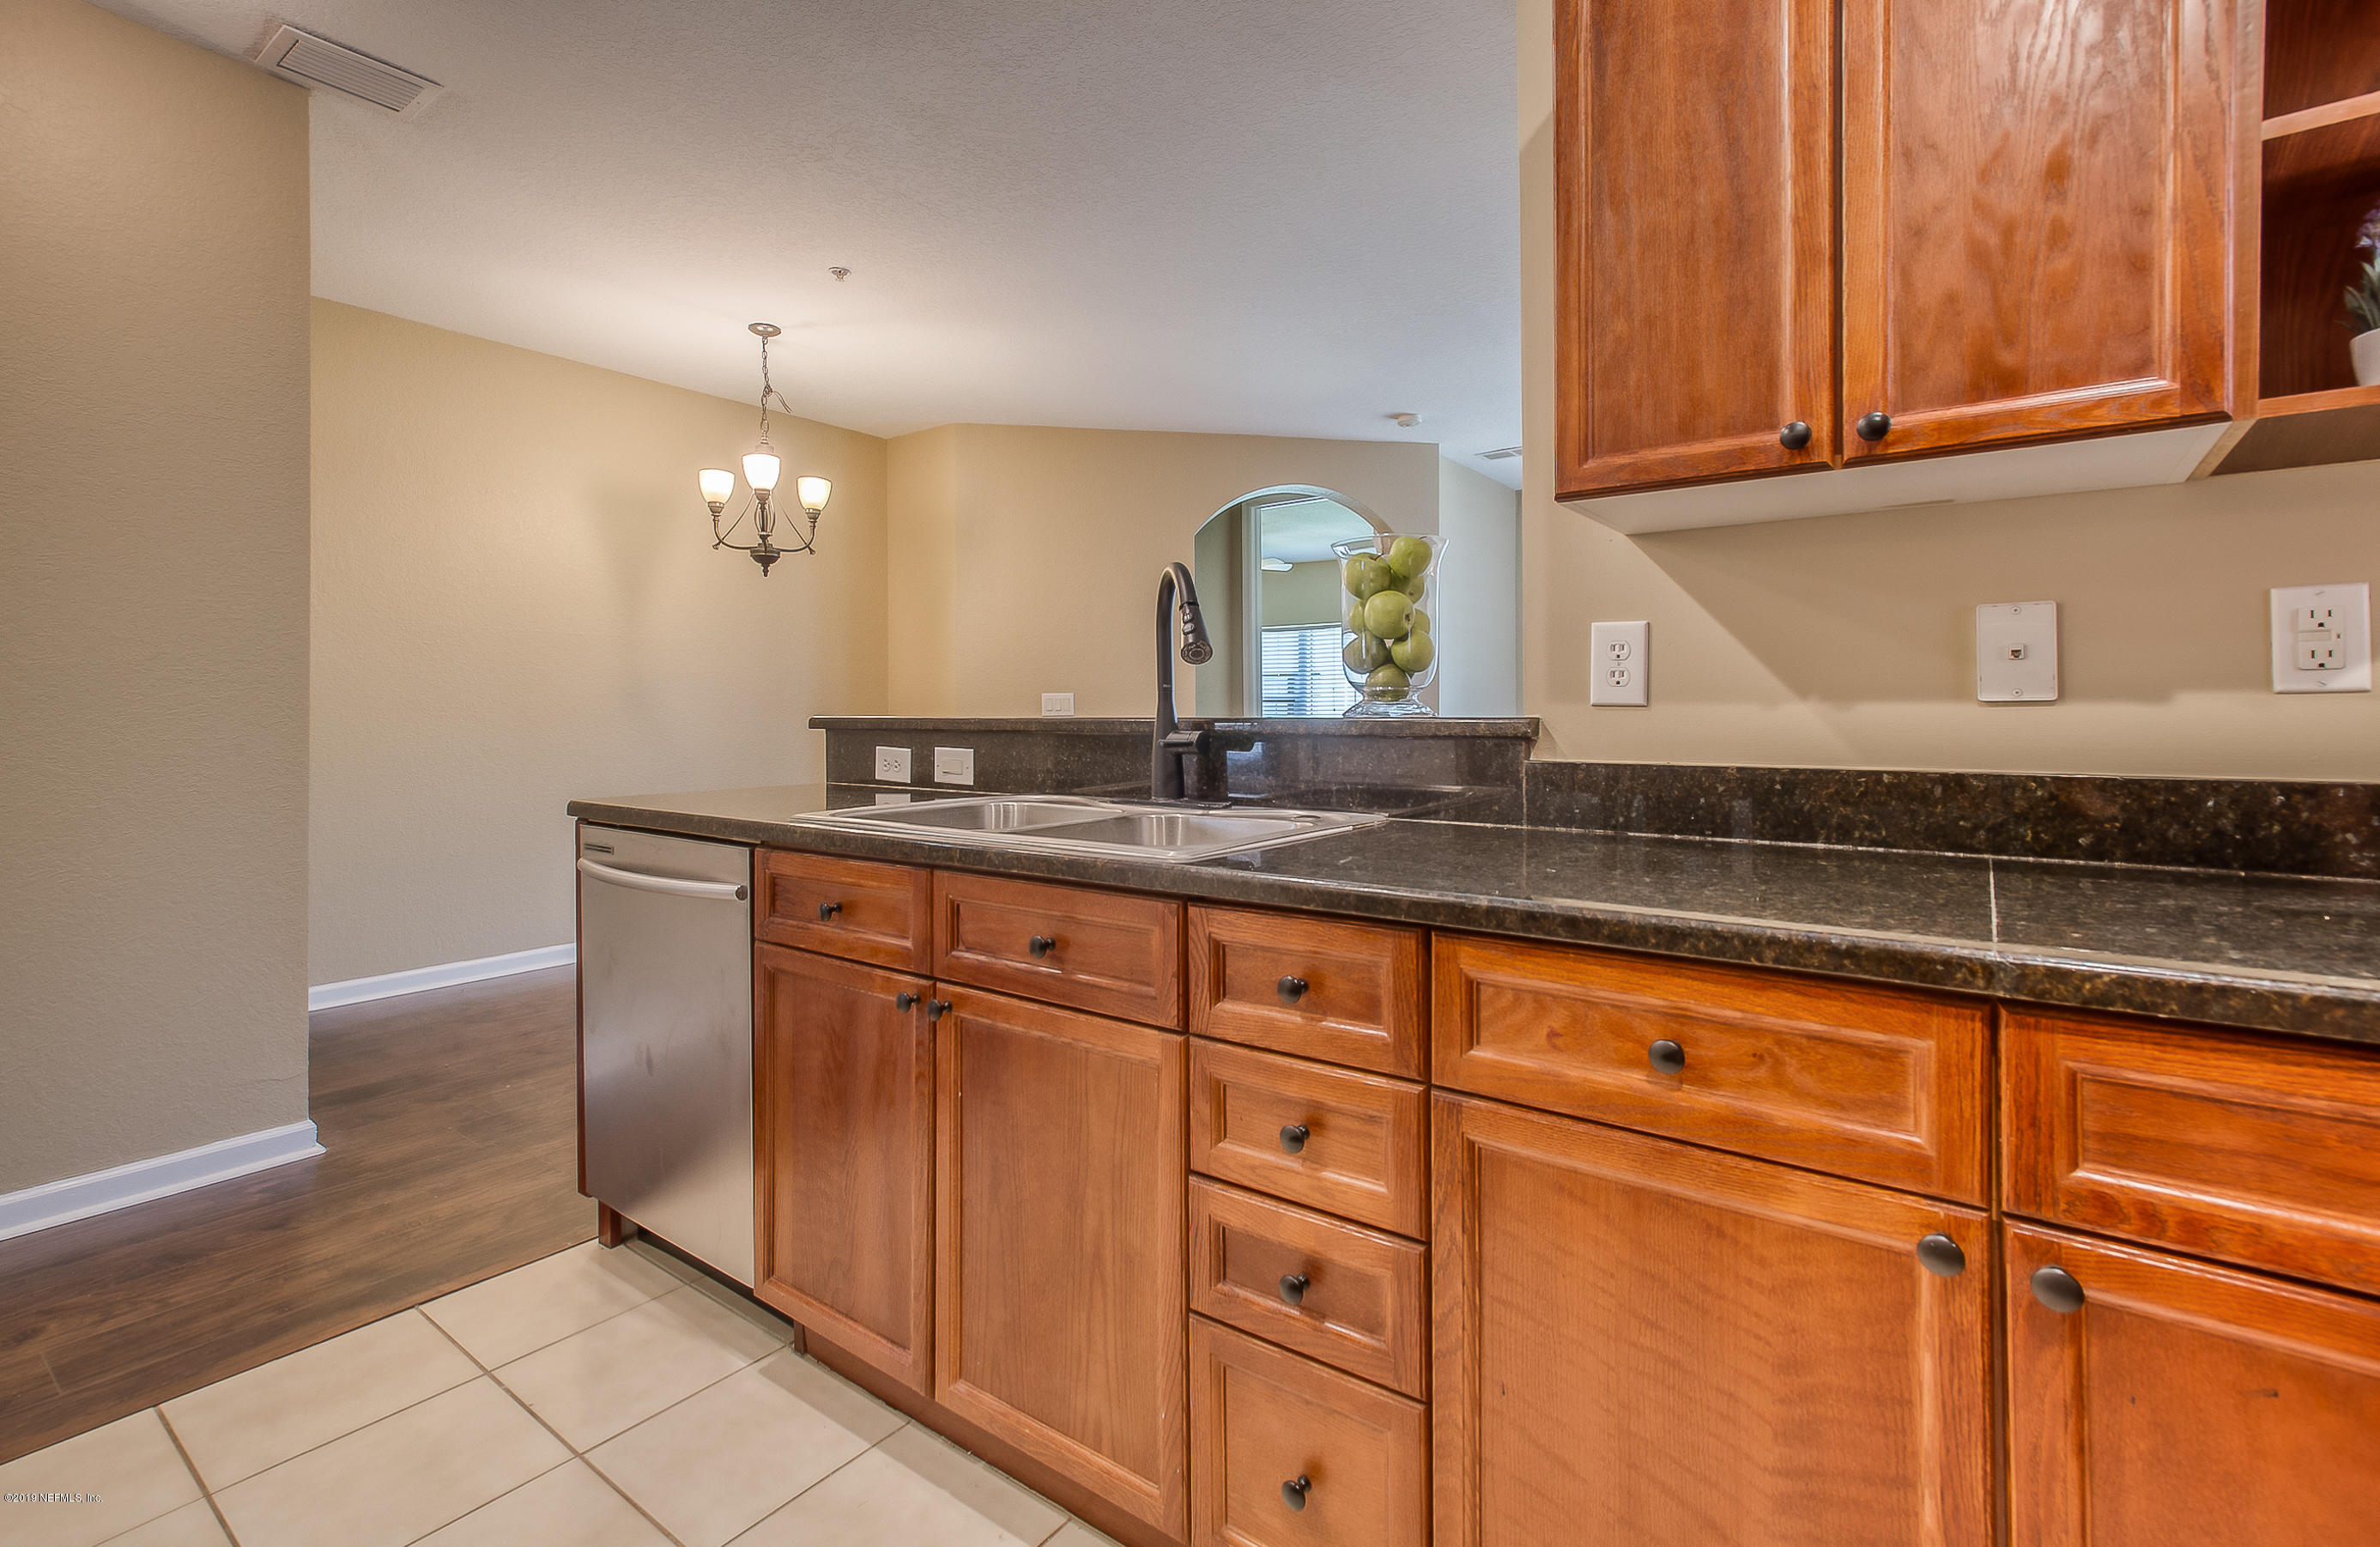 415 LA TRAVESIA FLORA, ST AUGUSTINE, FLORIDA 32095, 3 Bedrooms Bedrooms, ,2 BathroomsBathrooms,Condo,For sale,LA TRAVESIA FLORA,1003757